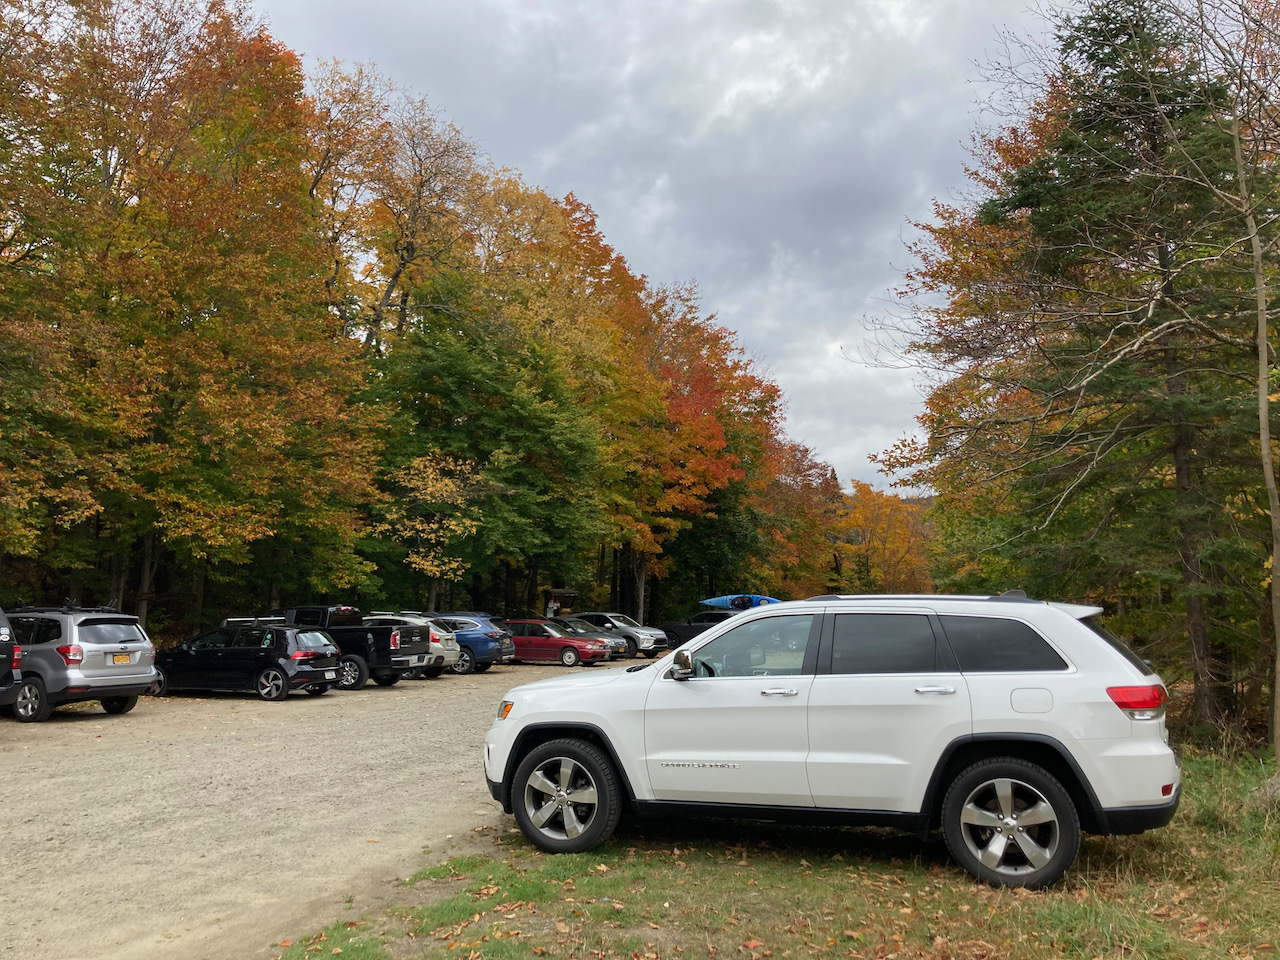 White Jeep Grand Cherokee, parked in dirt lot of Blue Mountain hiking trail.